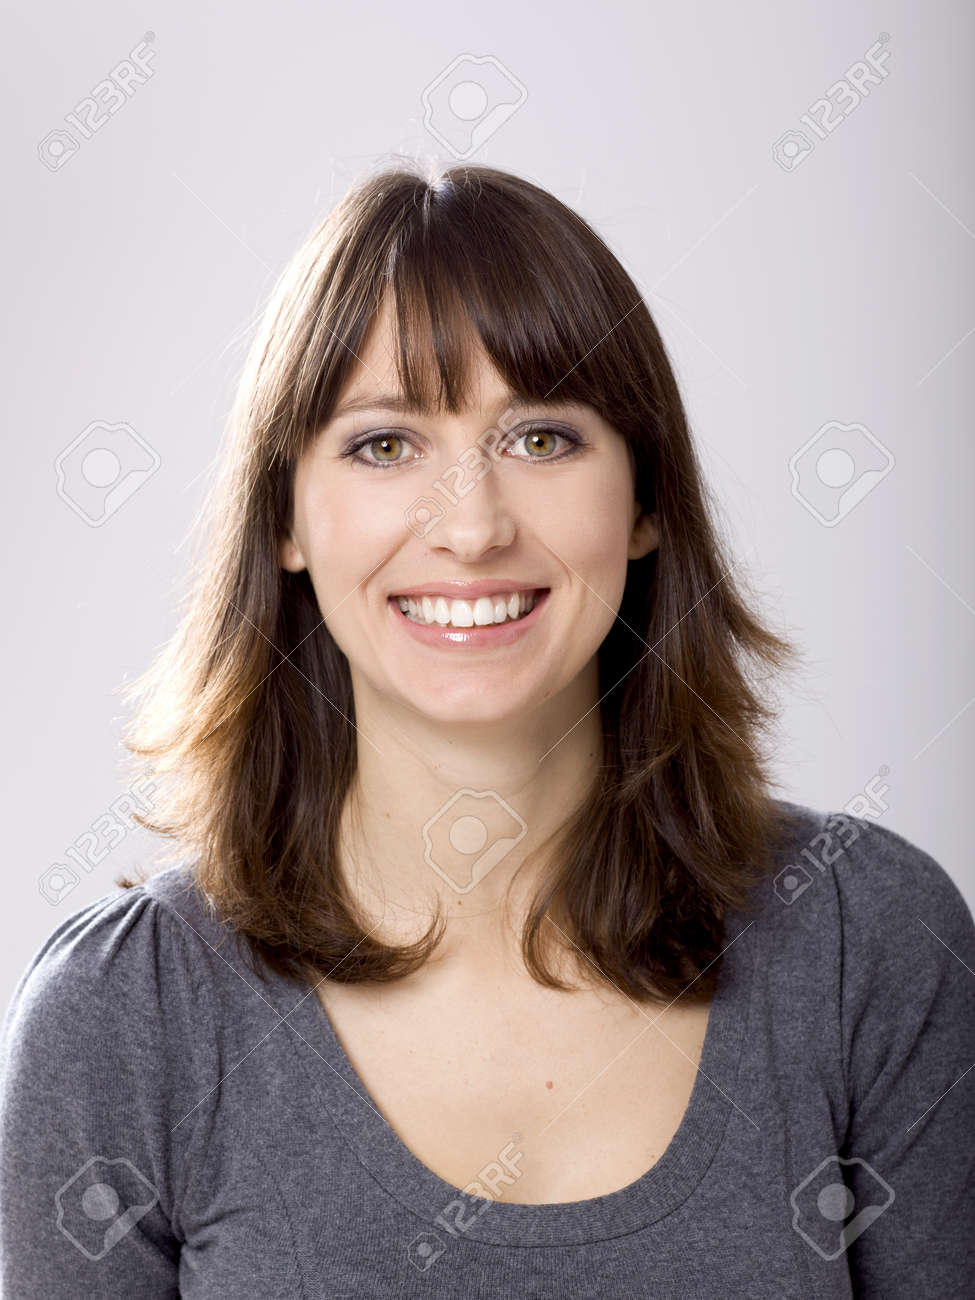 Beautiful young woman smiling, against a gray background Stock Photo - 12670041